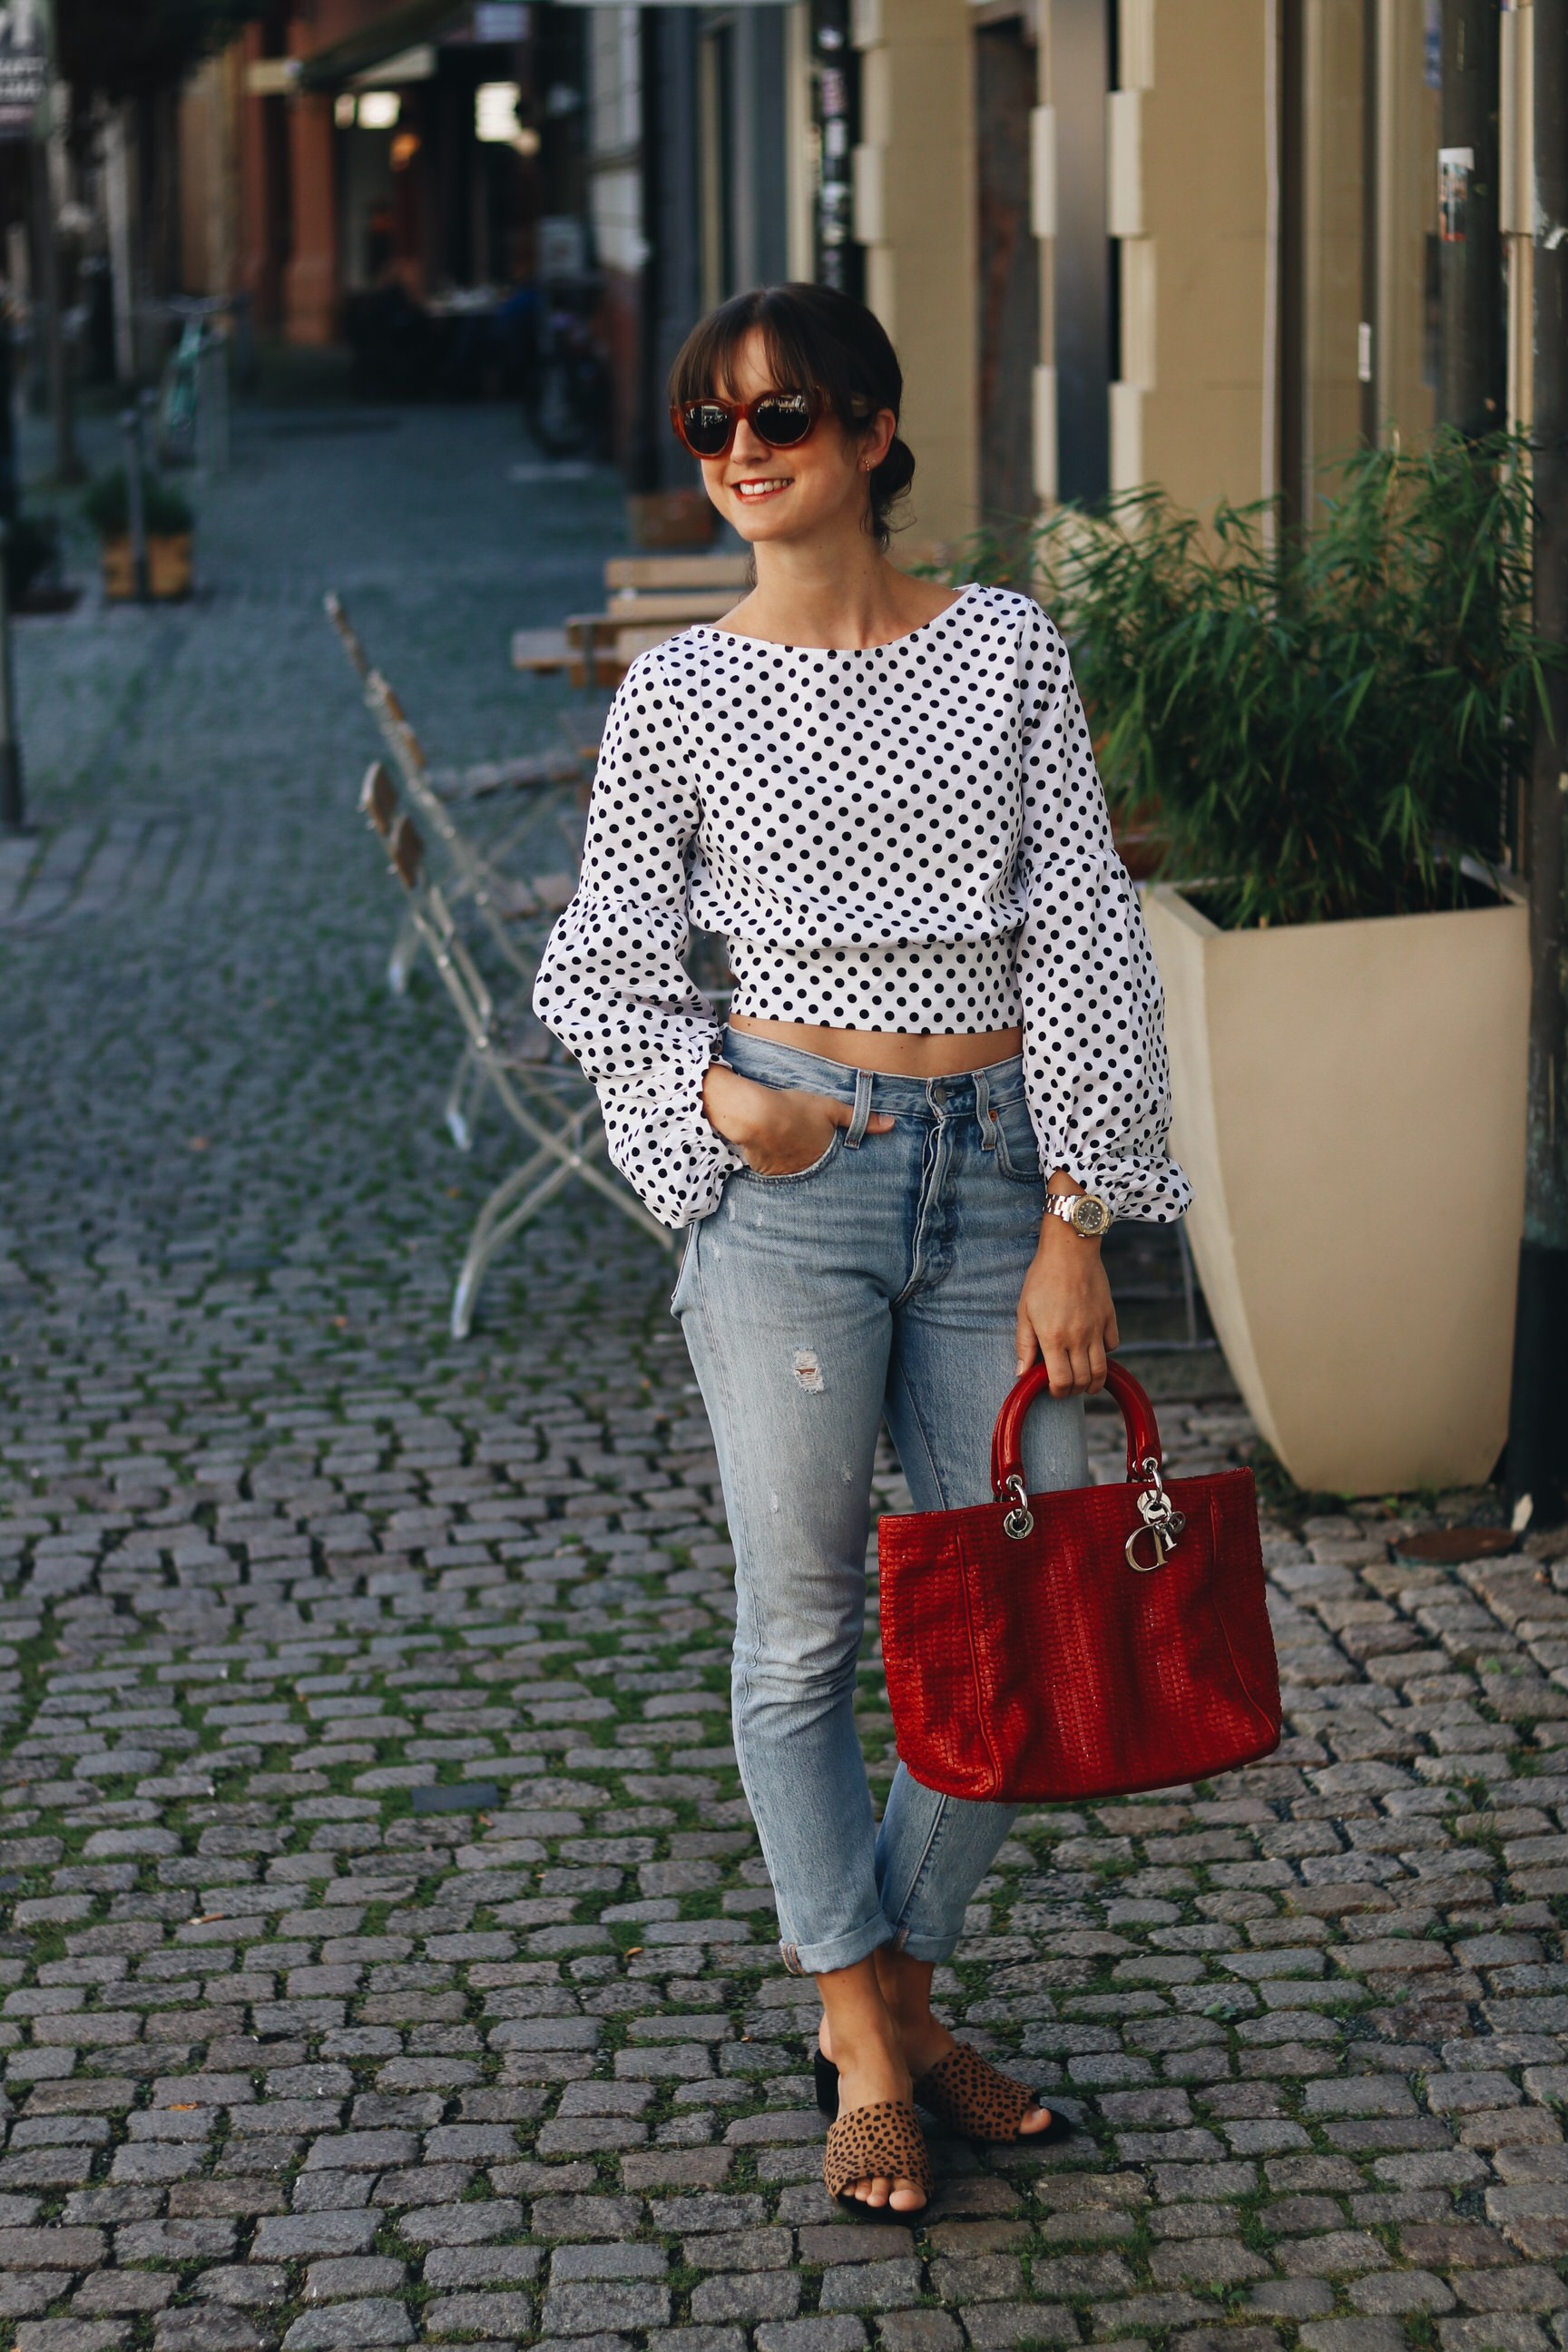 blog-fashion-outfit-mode-deutschland-freiburg-bloggerin